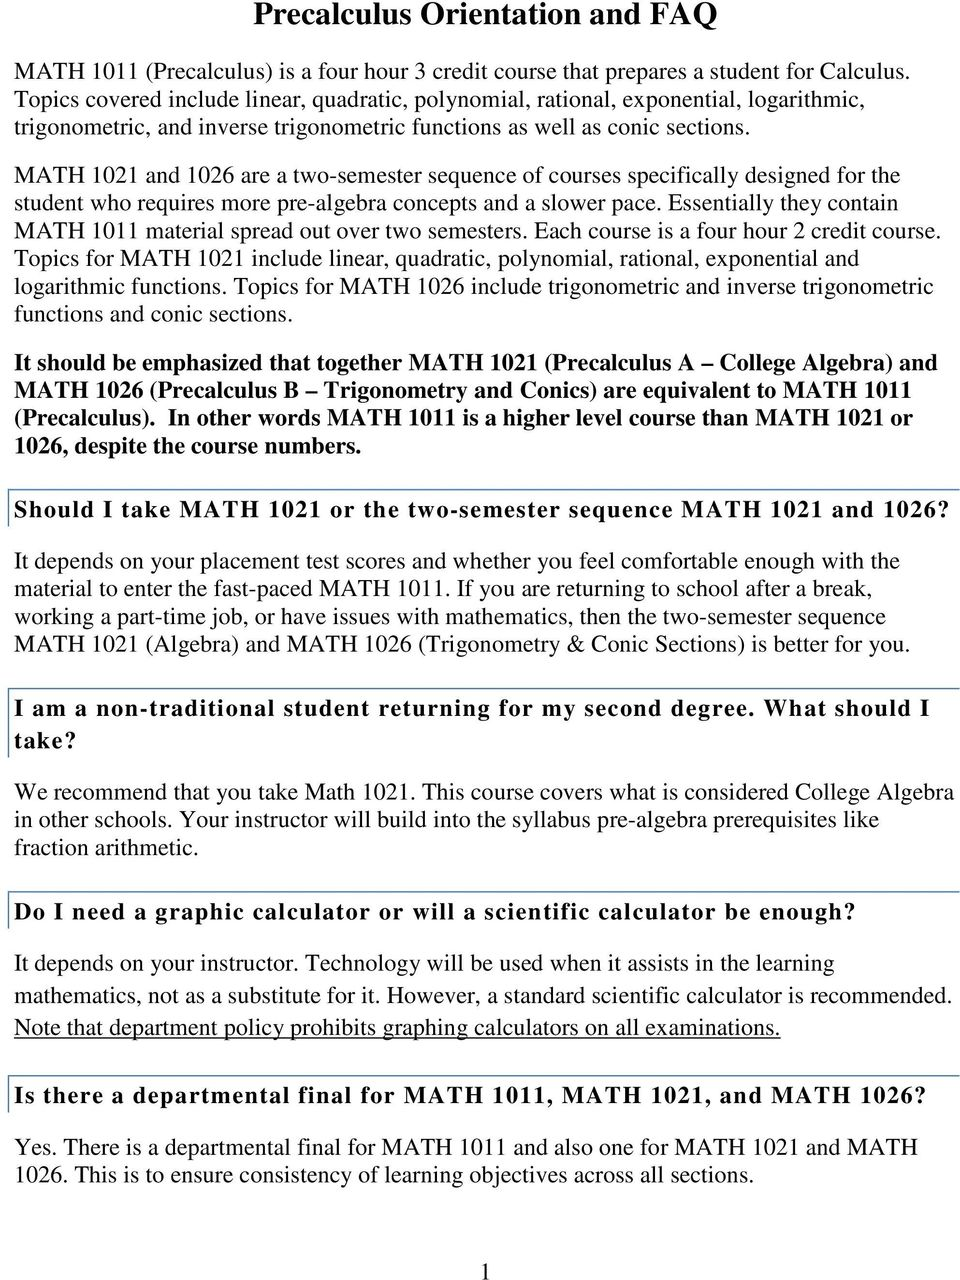 MATH 1021 and 1026 are a two-semester sequence of courses specifically designed for the student who requires more pre-algebra concepts and a slower pace.